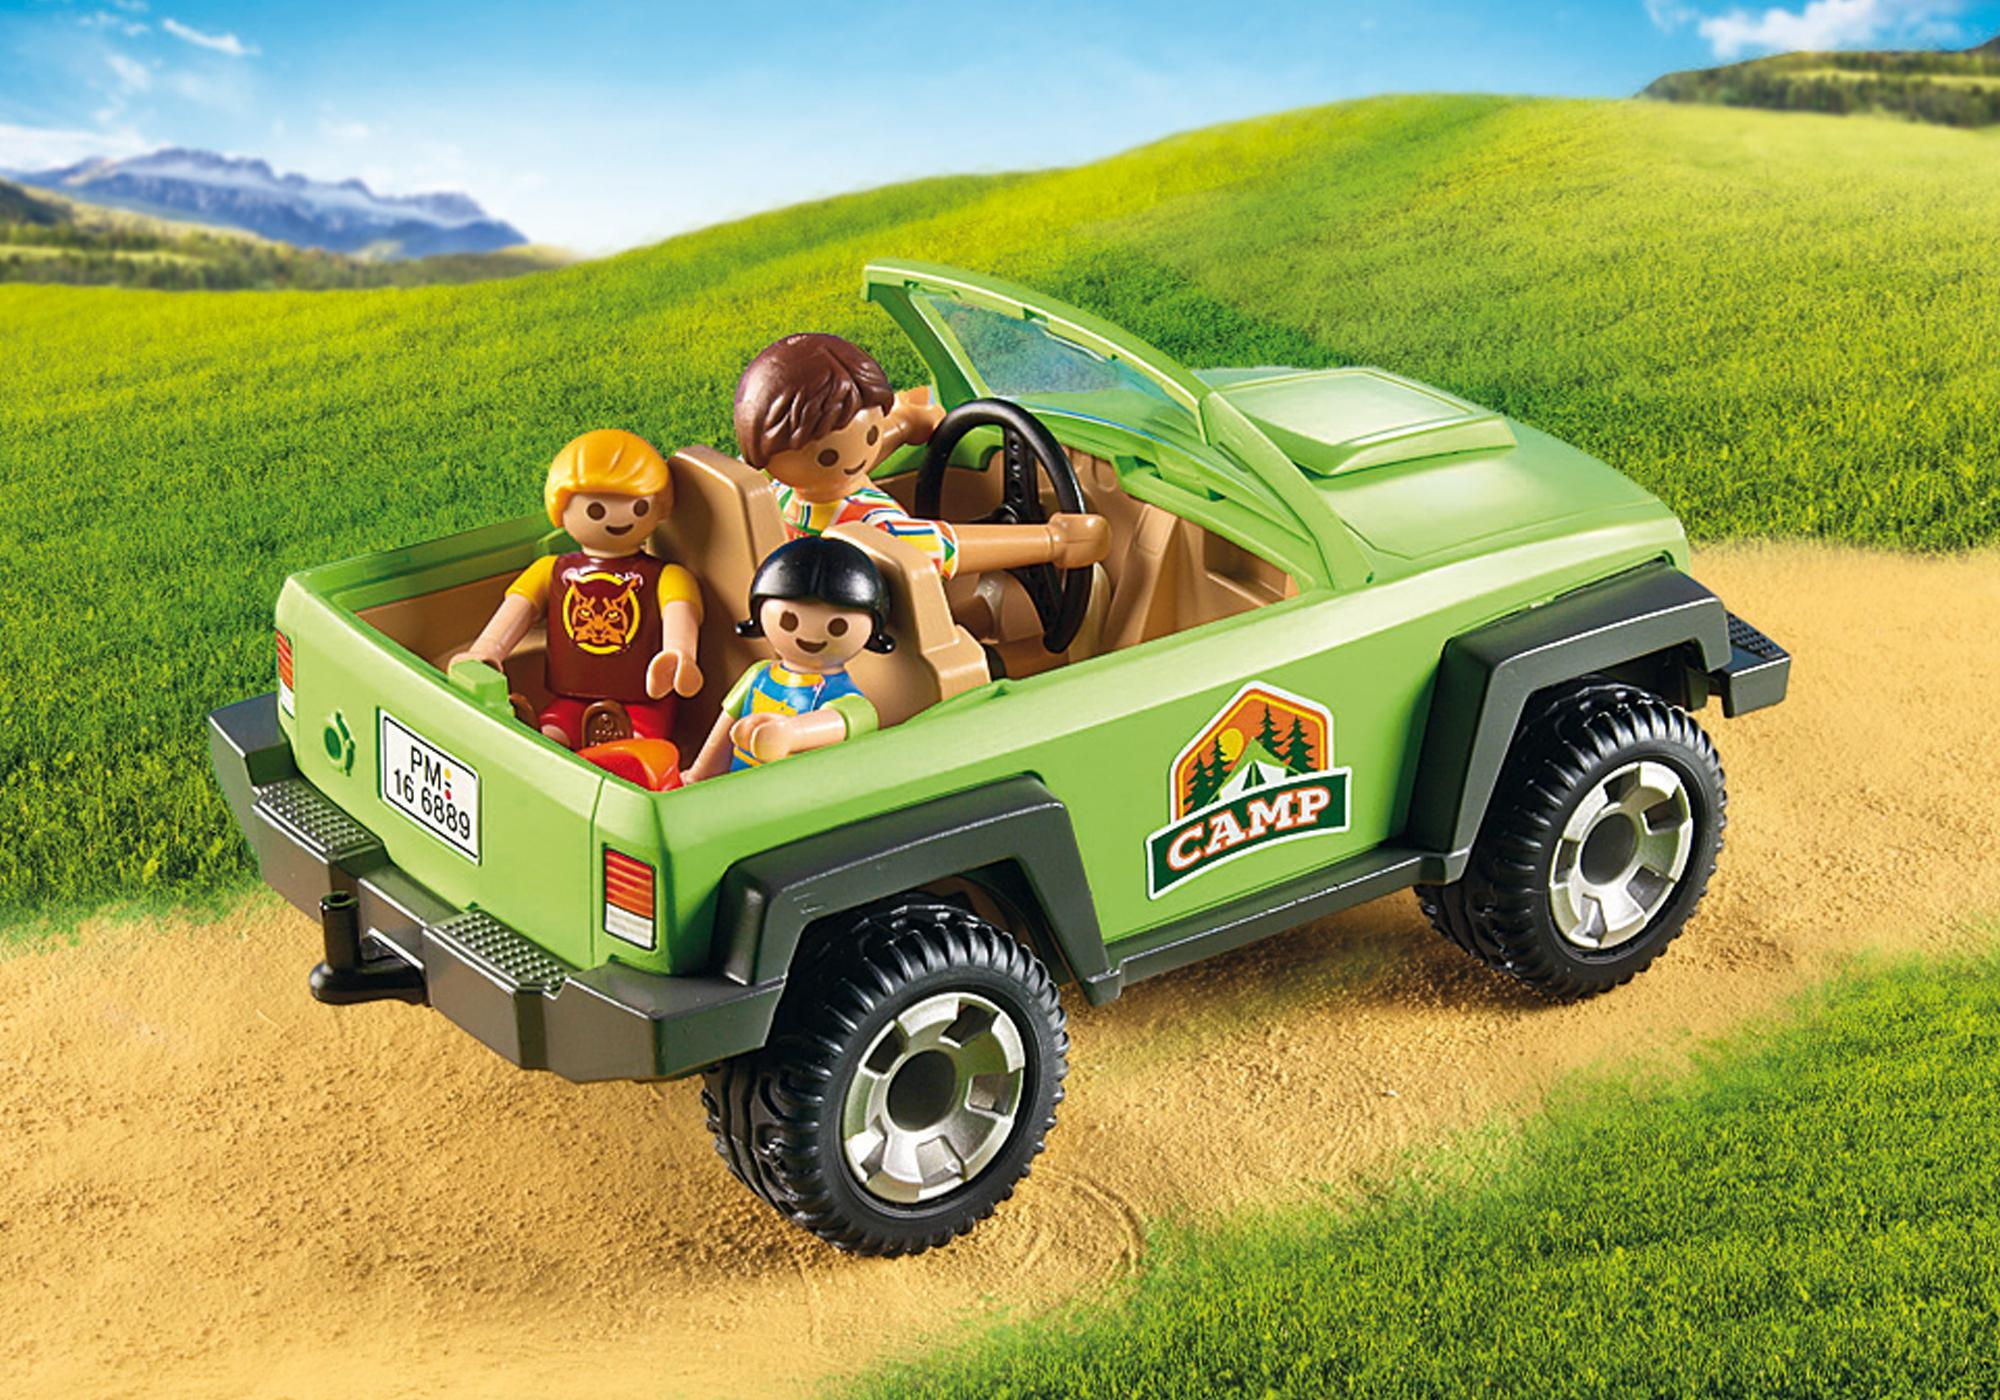 http://media.playmobil.com/i/playmobil/6889_product_extra2